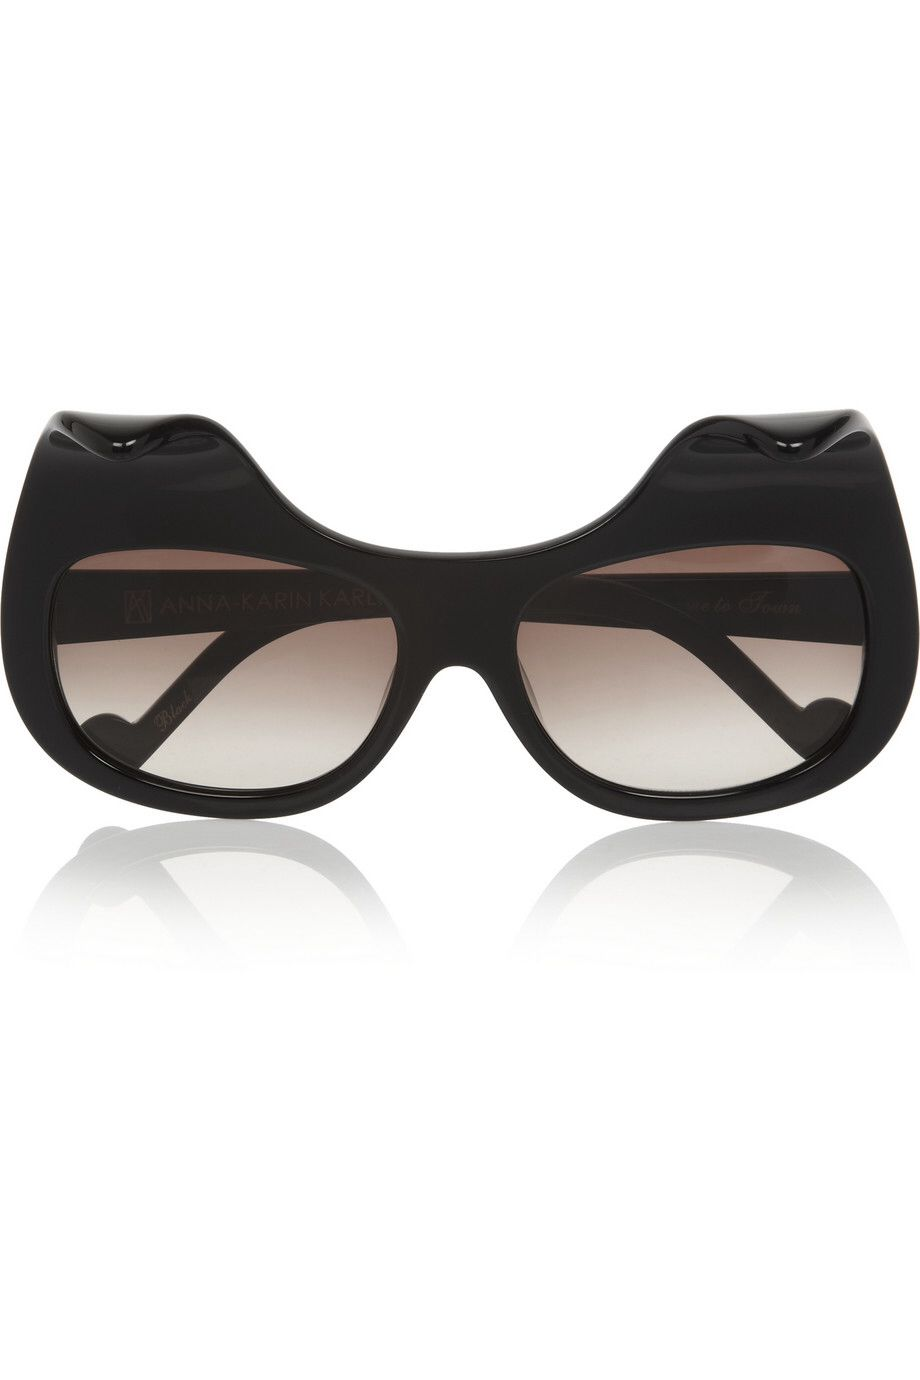 ANNA-KARIN KARLSSON When Trouble Came To Town square-frame acetate sunglasses $665.00 http://www.net-a-porter.com/products/413481